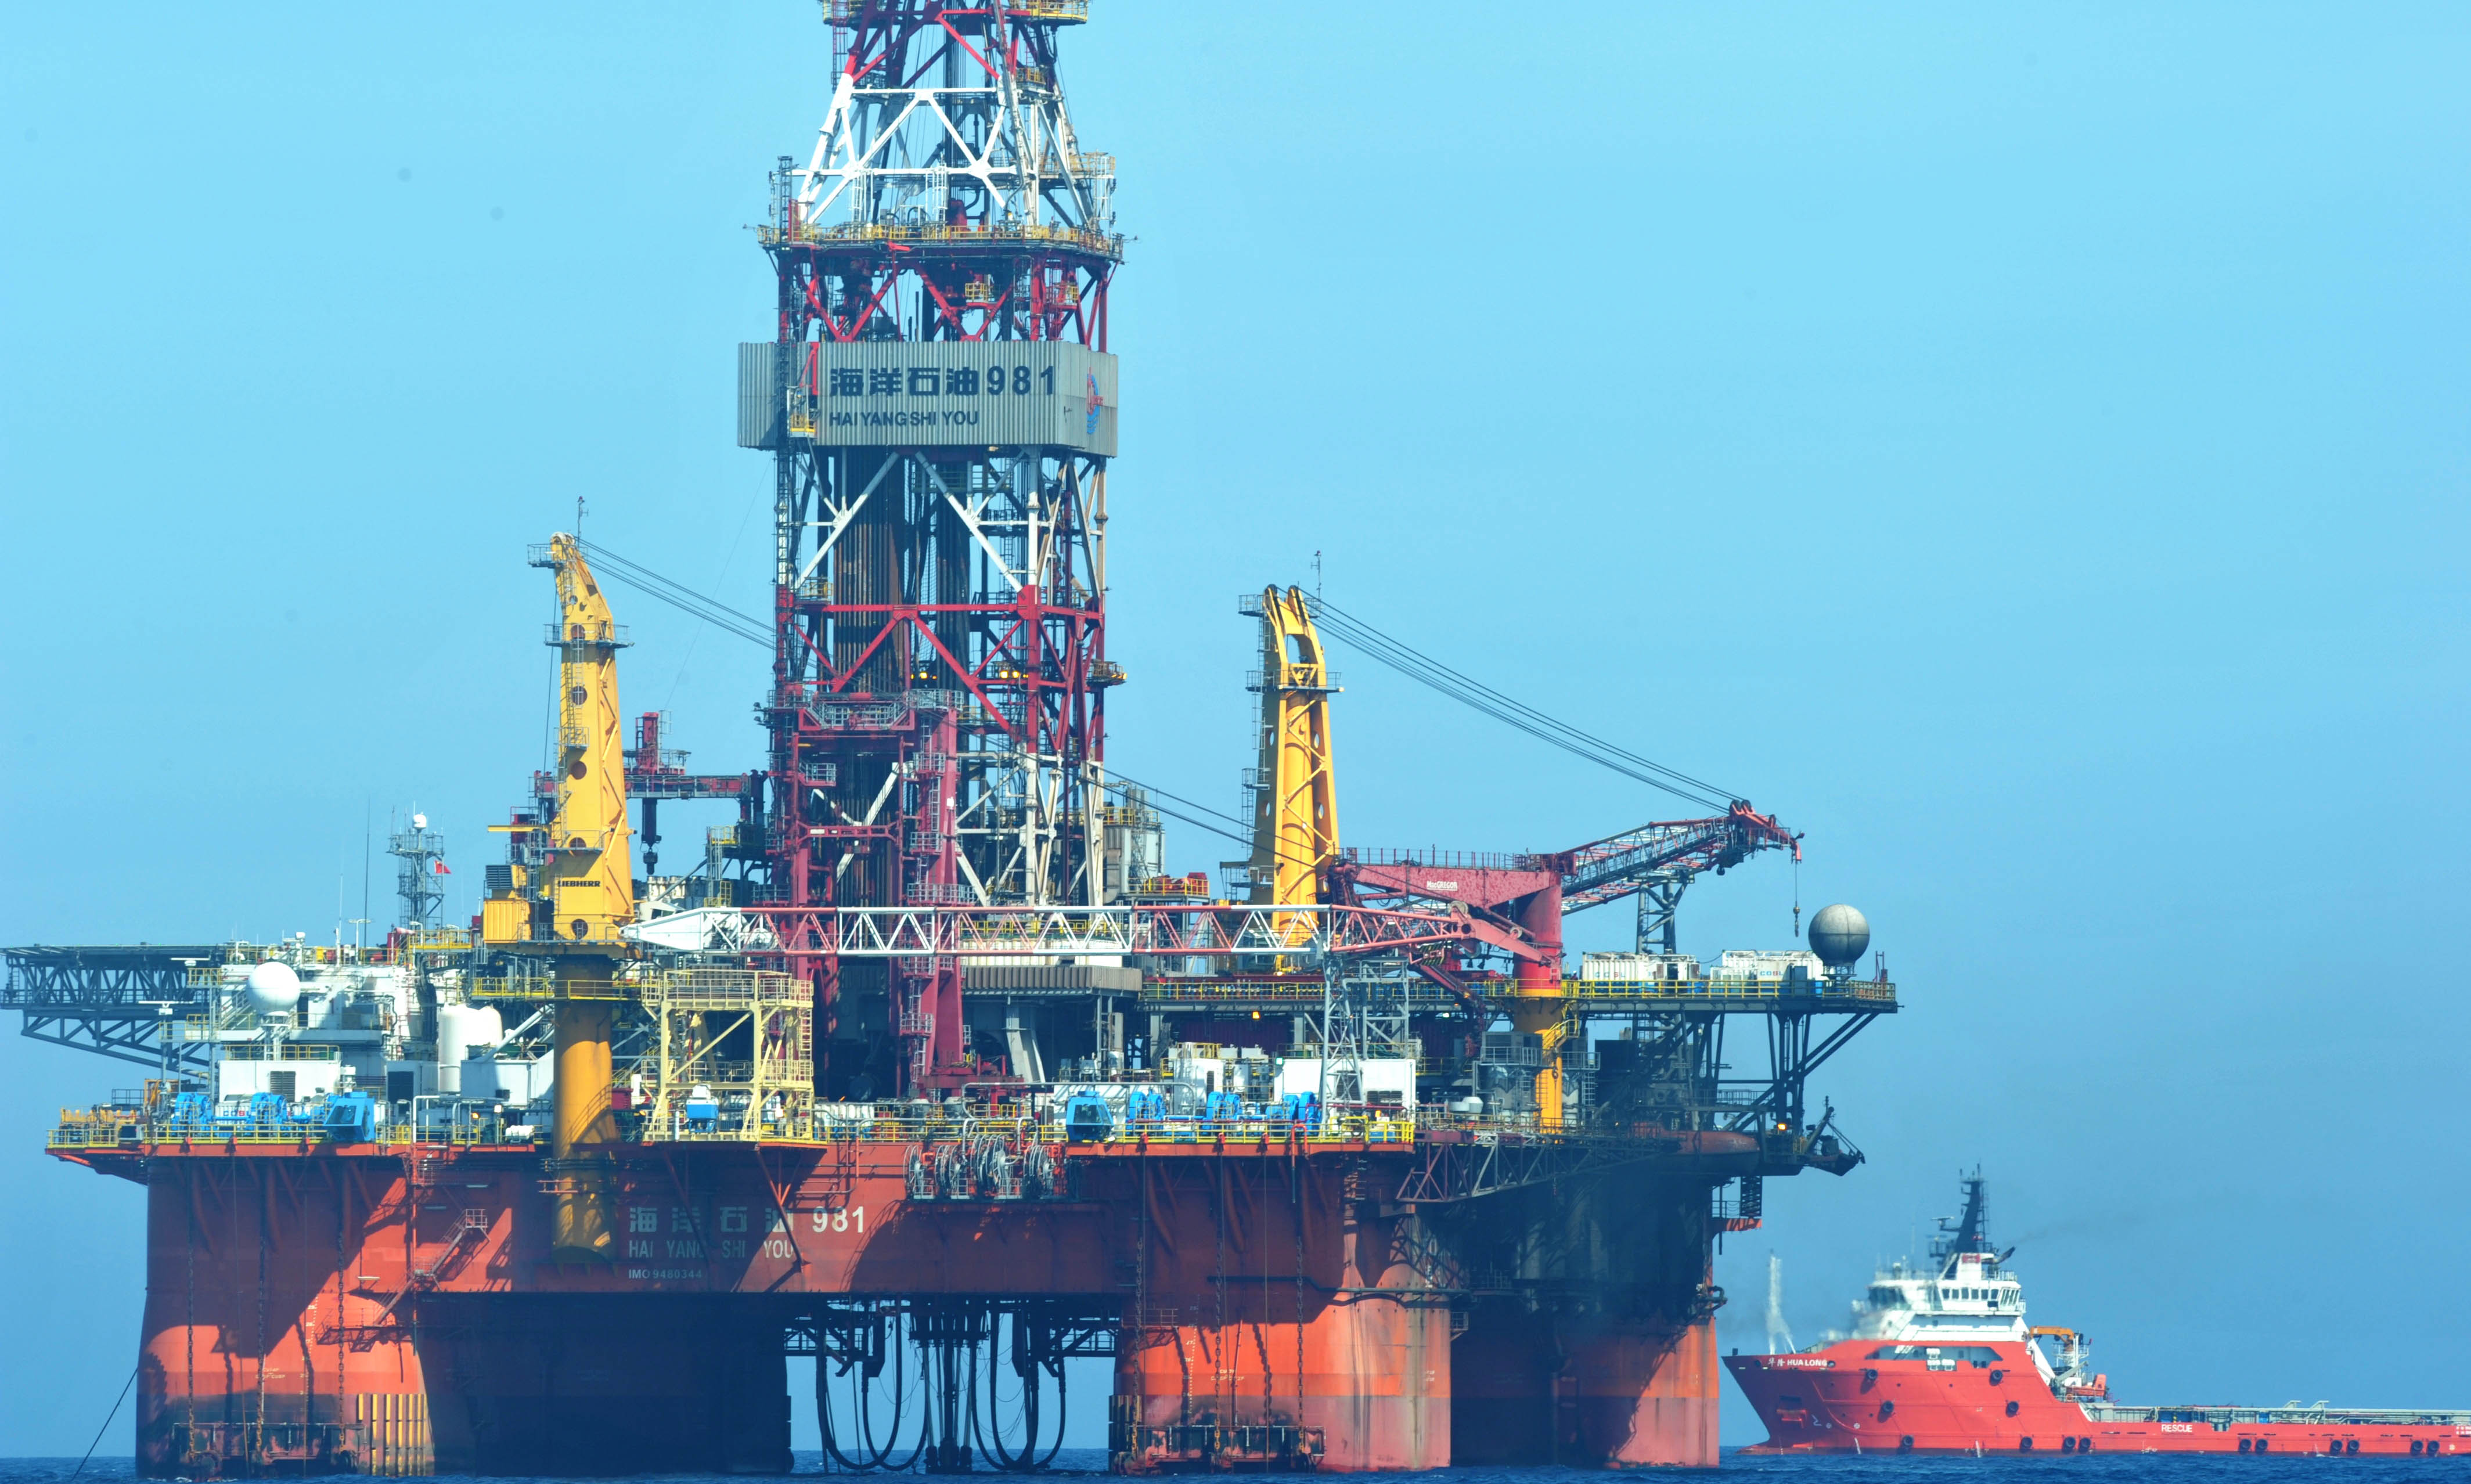 https://www.scmp.com/sites/default/files/2014/06/17/oil_rig_xinhua.jpg